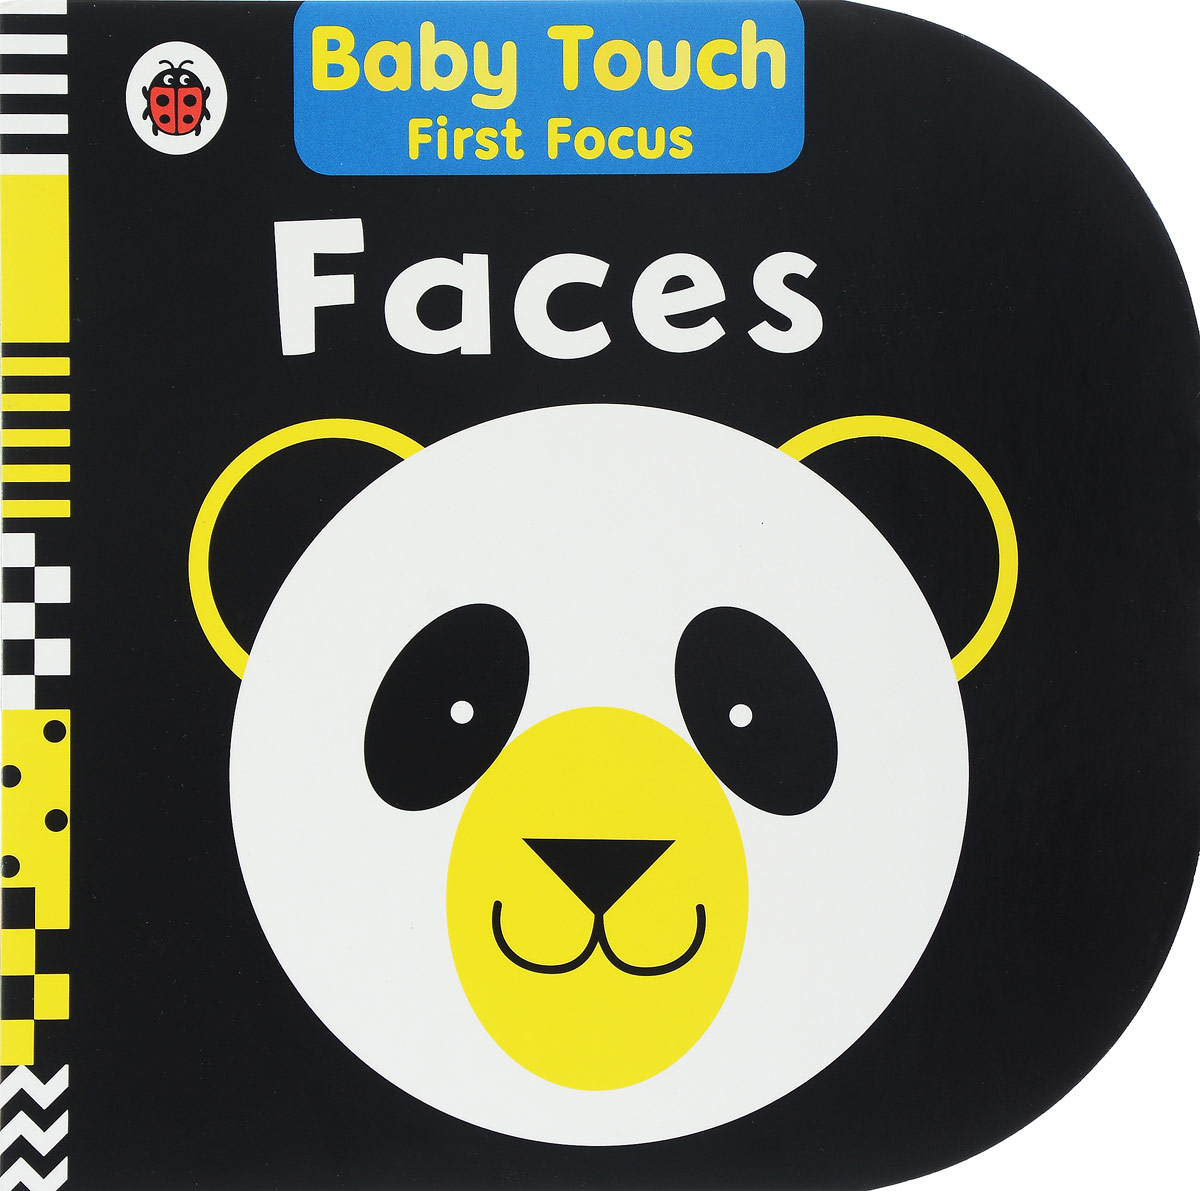 Baby Touch: Faces cute smile faces high visibility